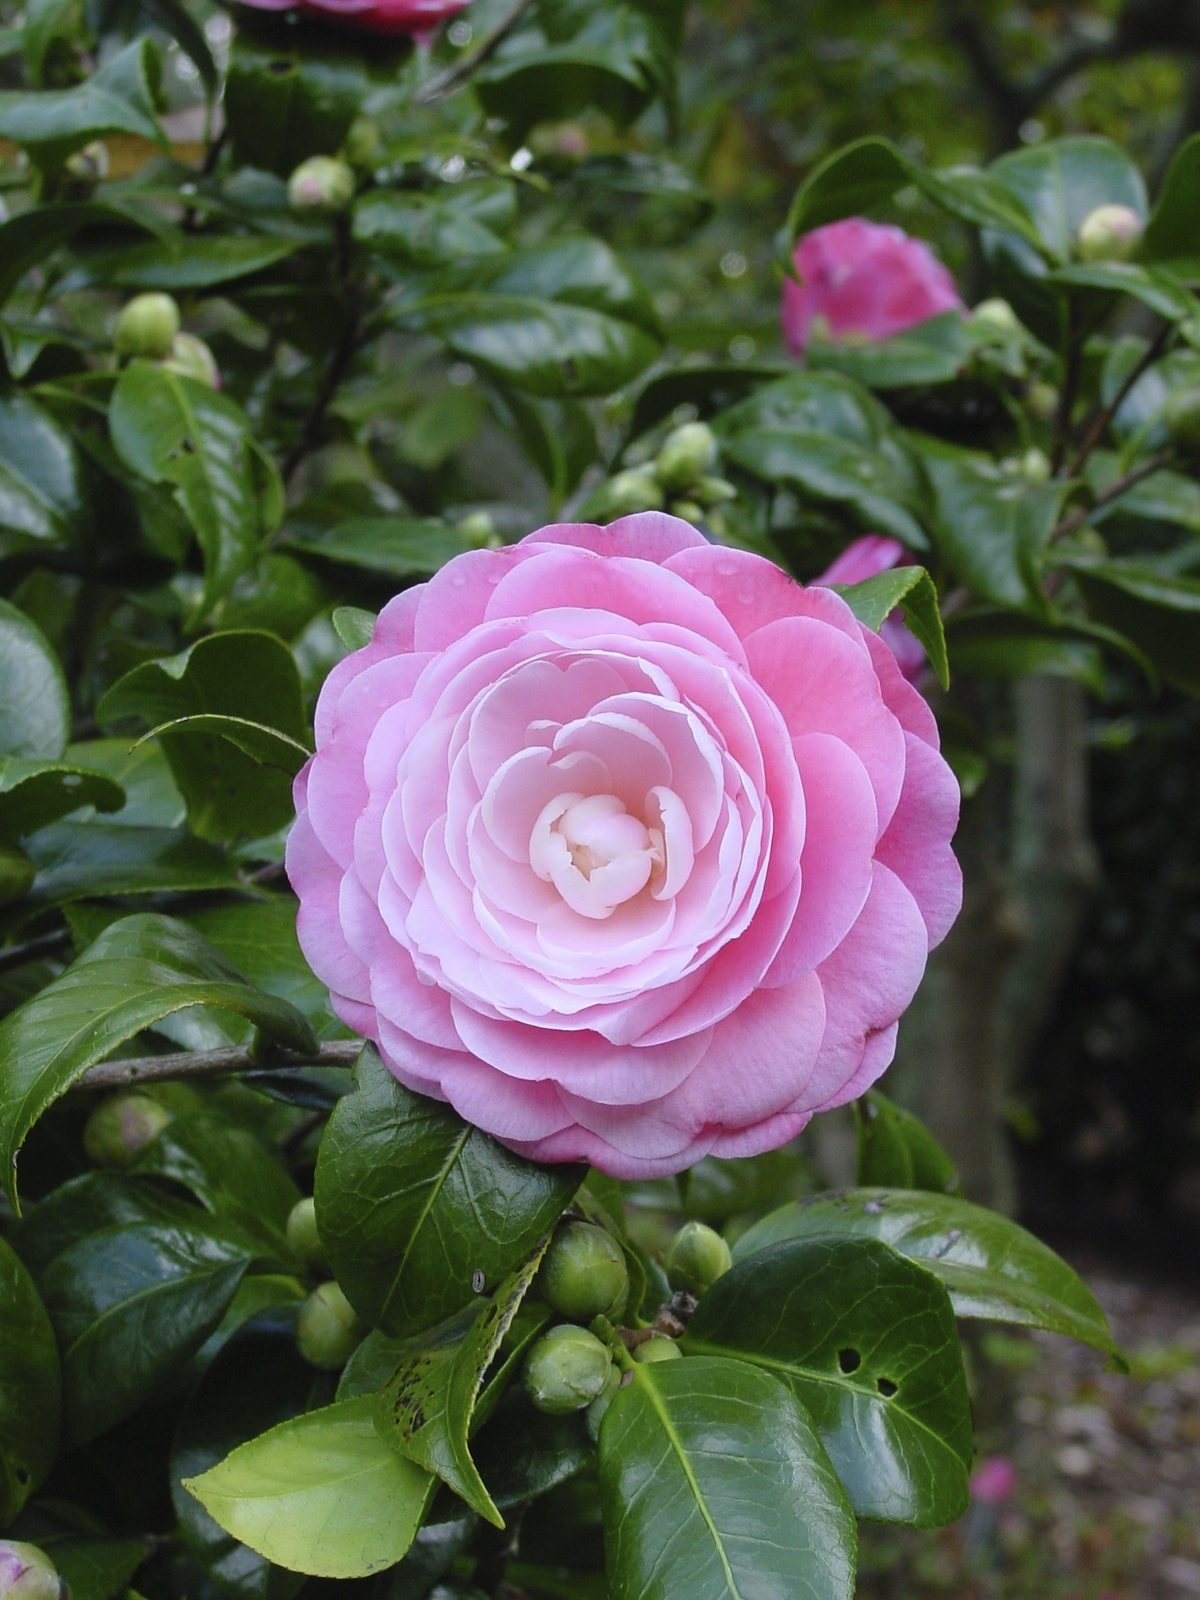 Camellia Planting And Care – How To Care For A Camellia Plant